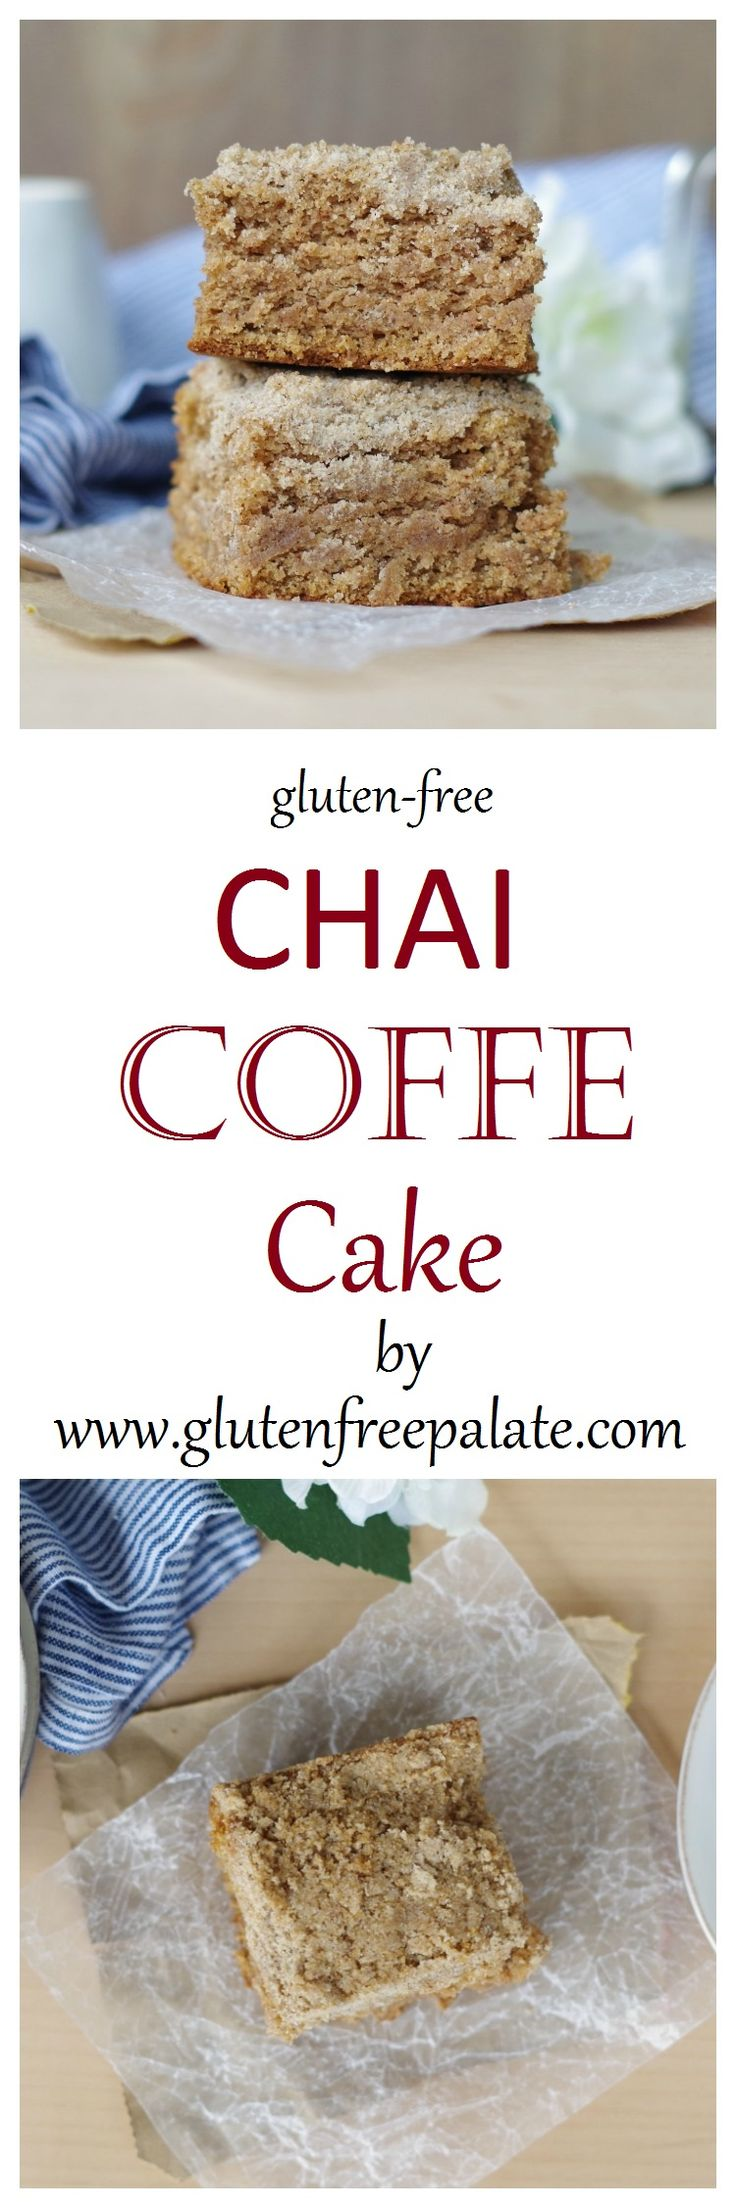 Perfect with coffee or tea, this Gluten-Free Chai Coffee Cake is sweet and spicy and perfect for any occasion. The rich buttery cake topped with a chai spiced crumbly topping will have you licking your fork.